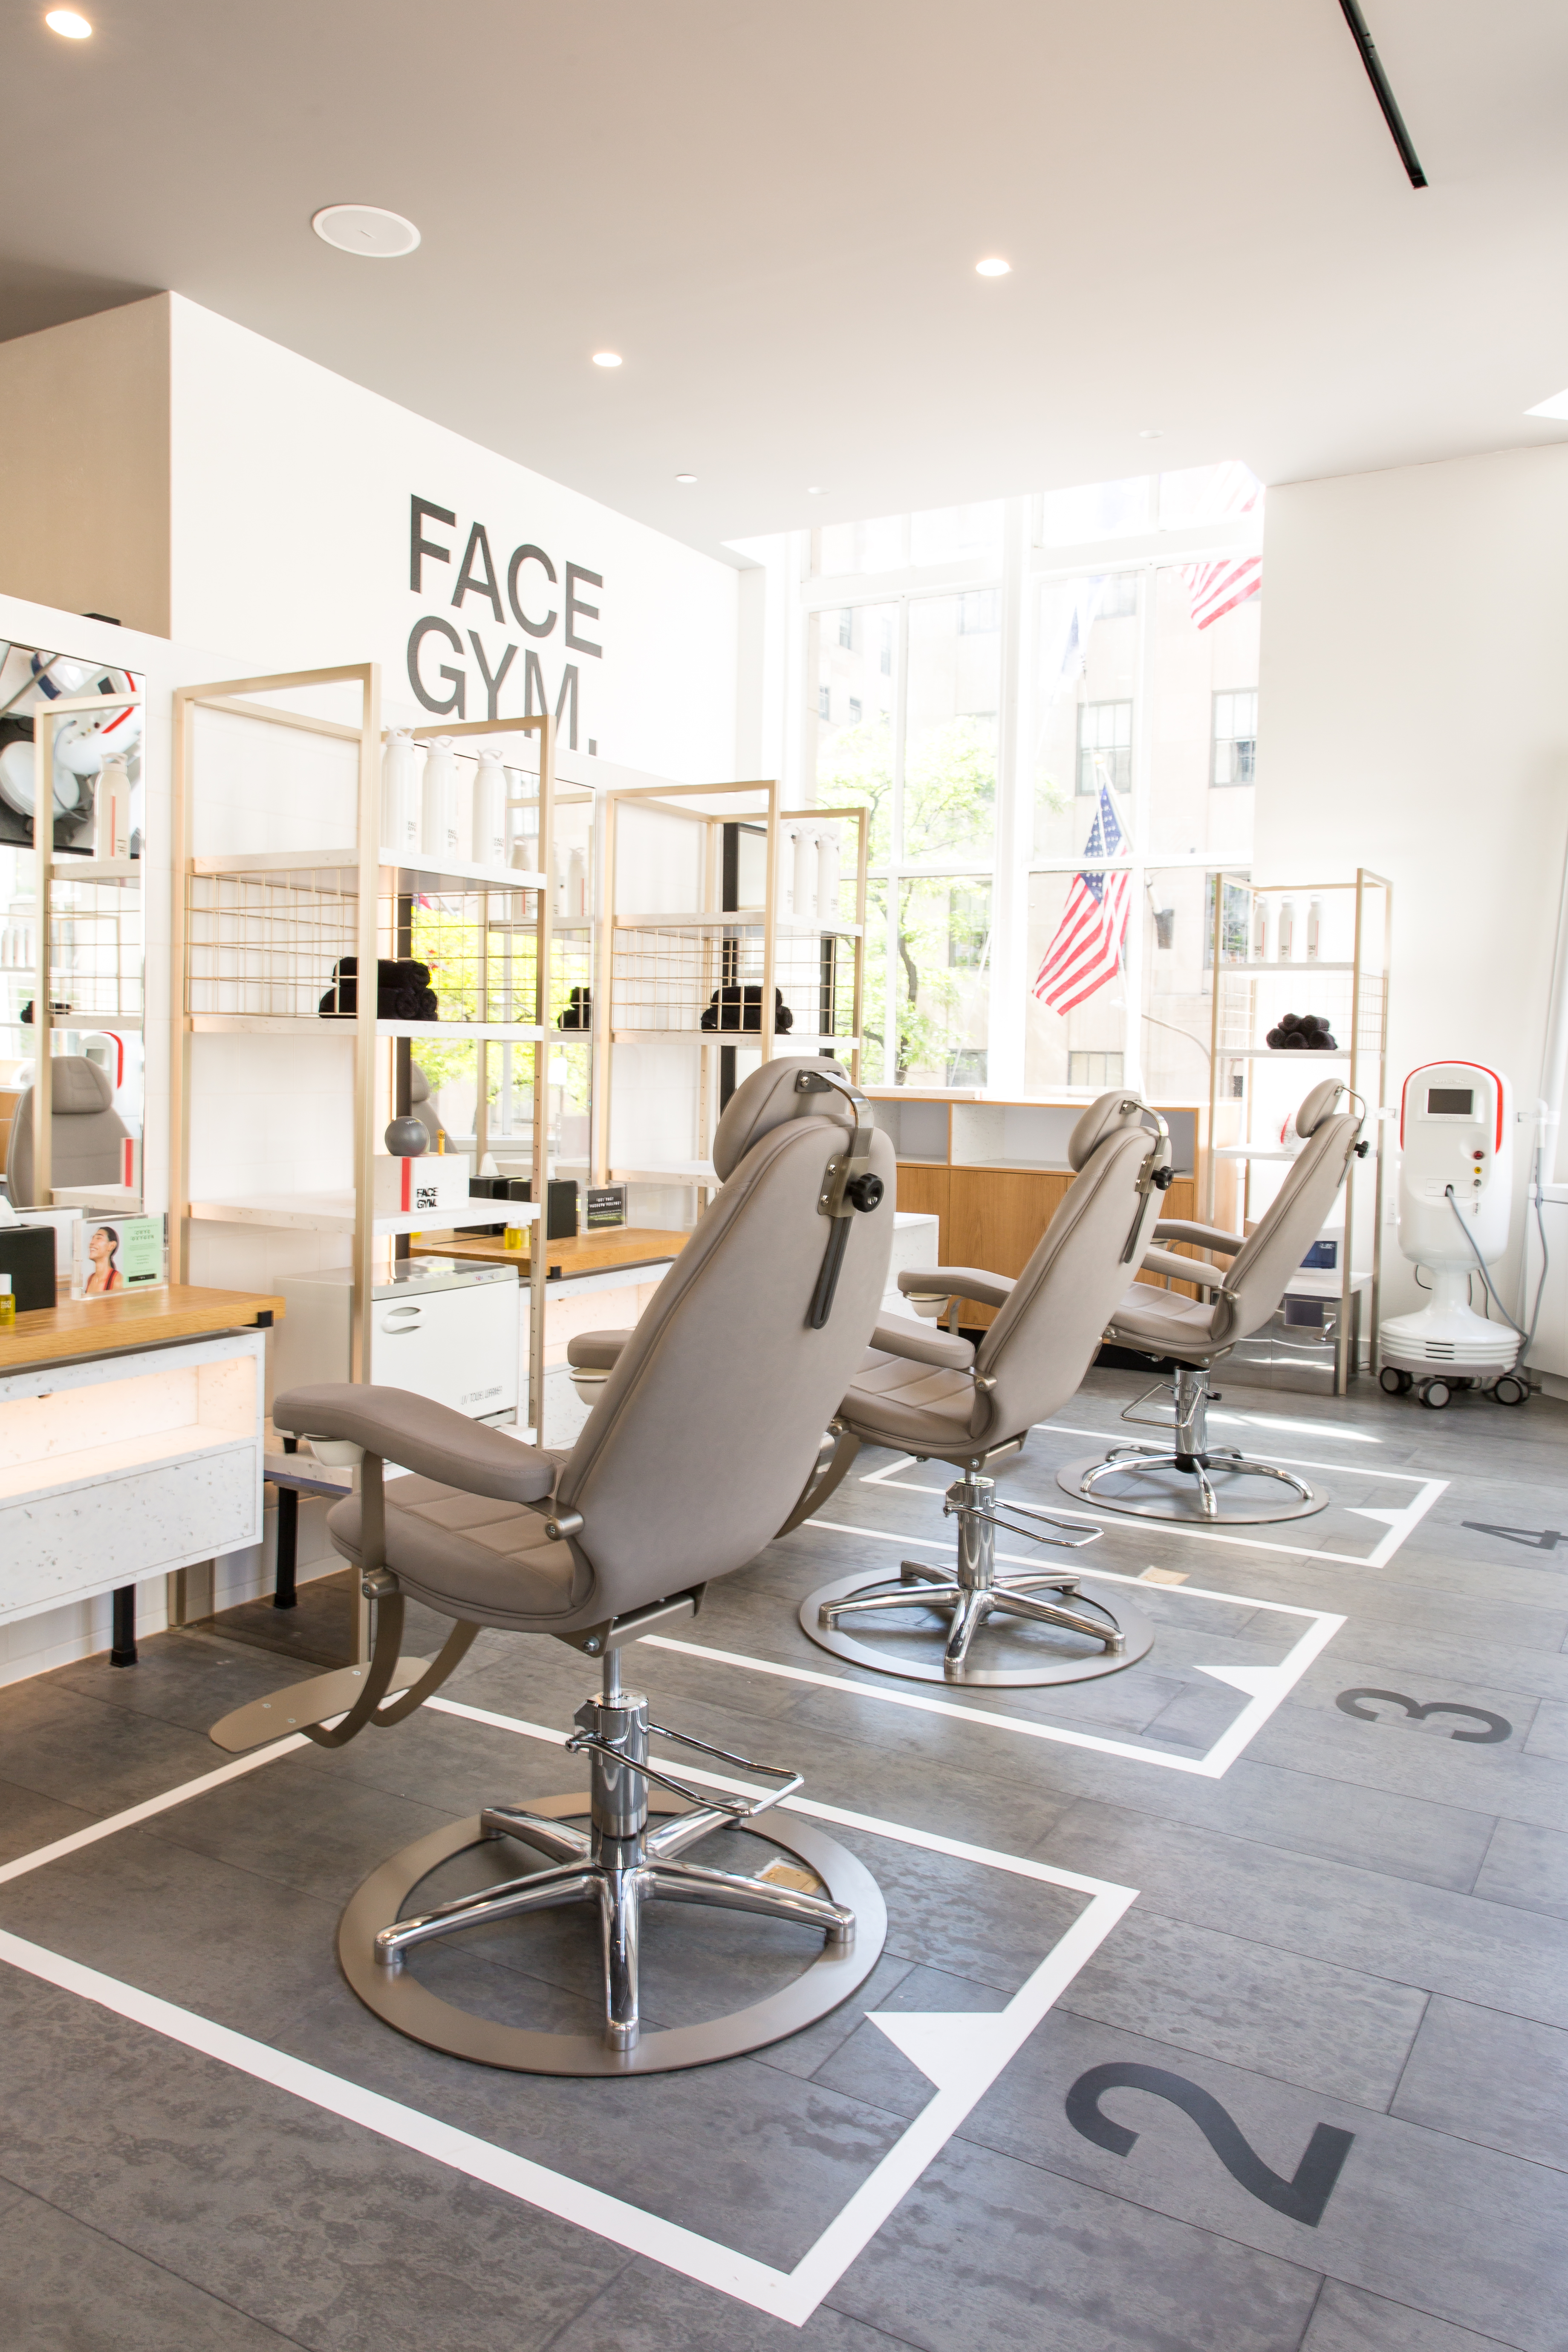 Review of The Face Gym